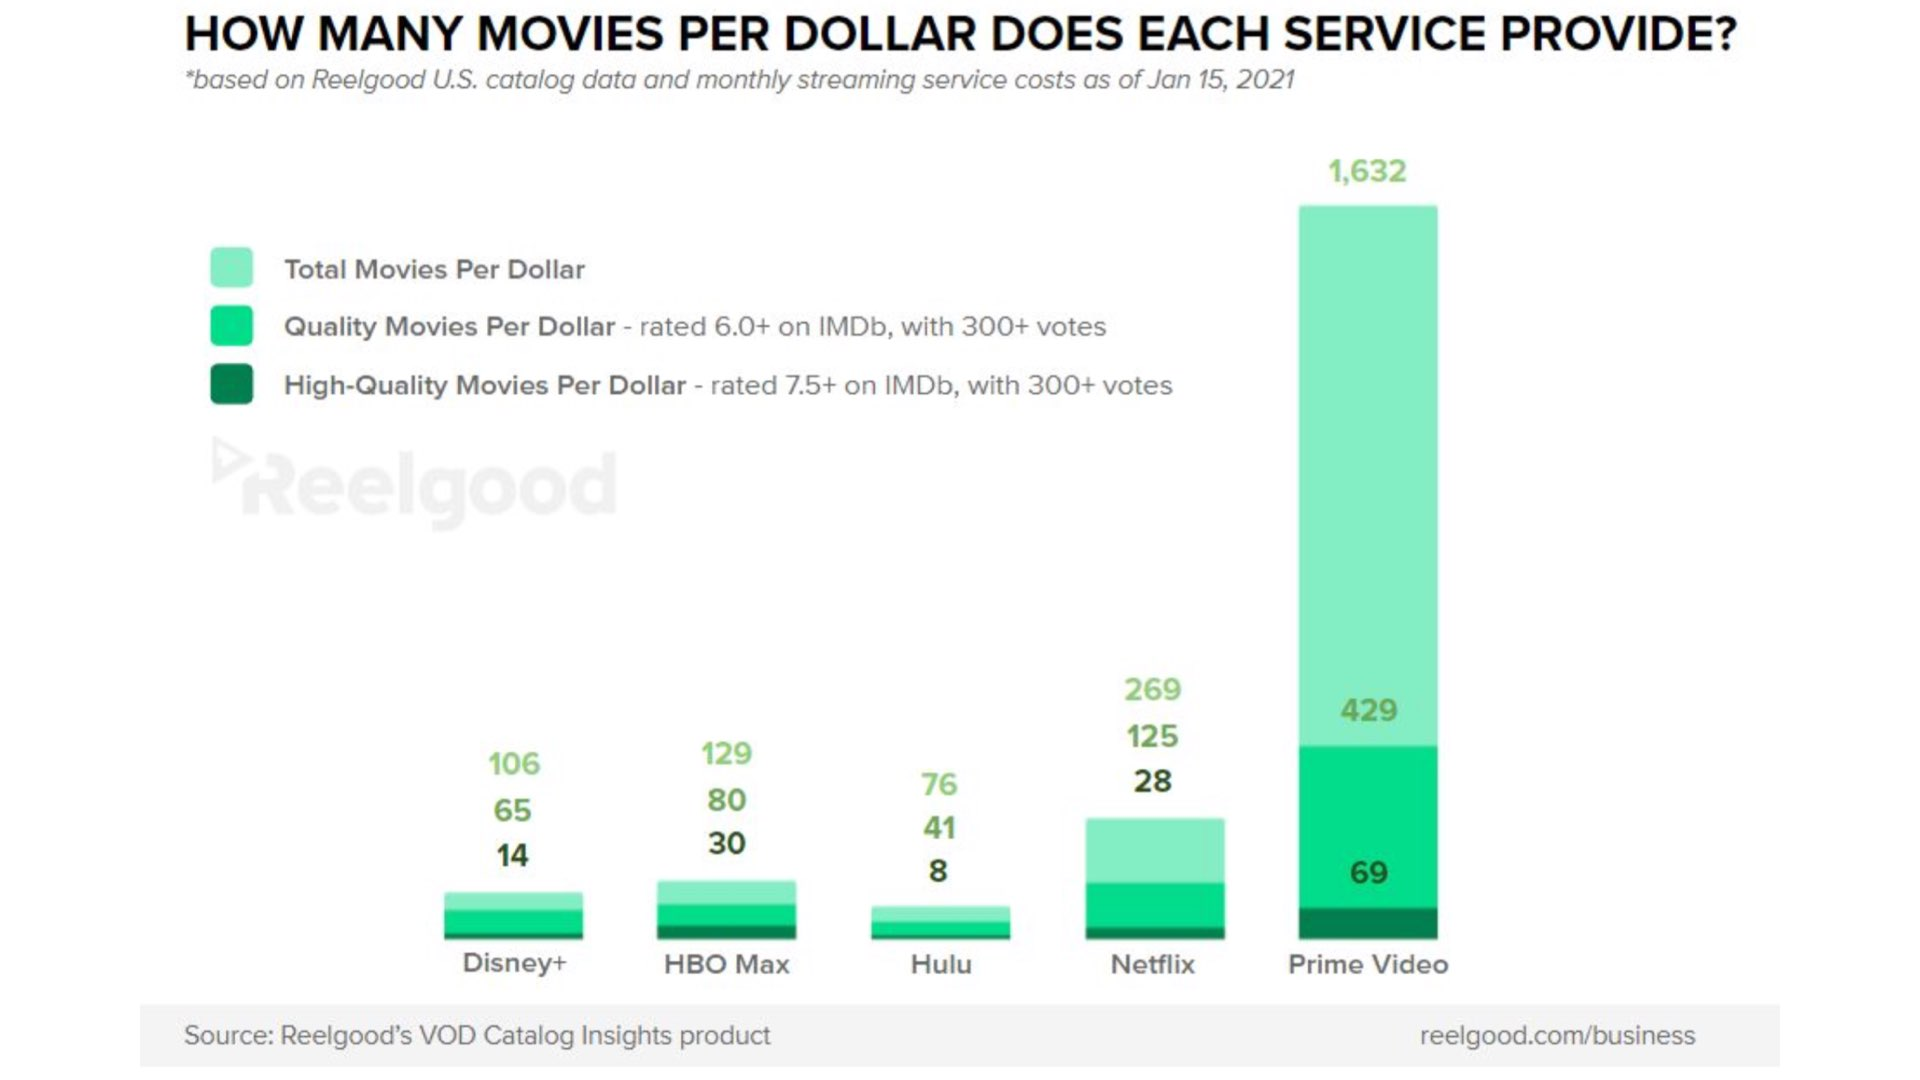 Line chart of total movies per dollar by service provider